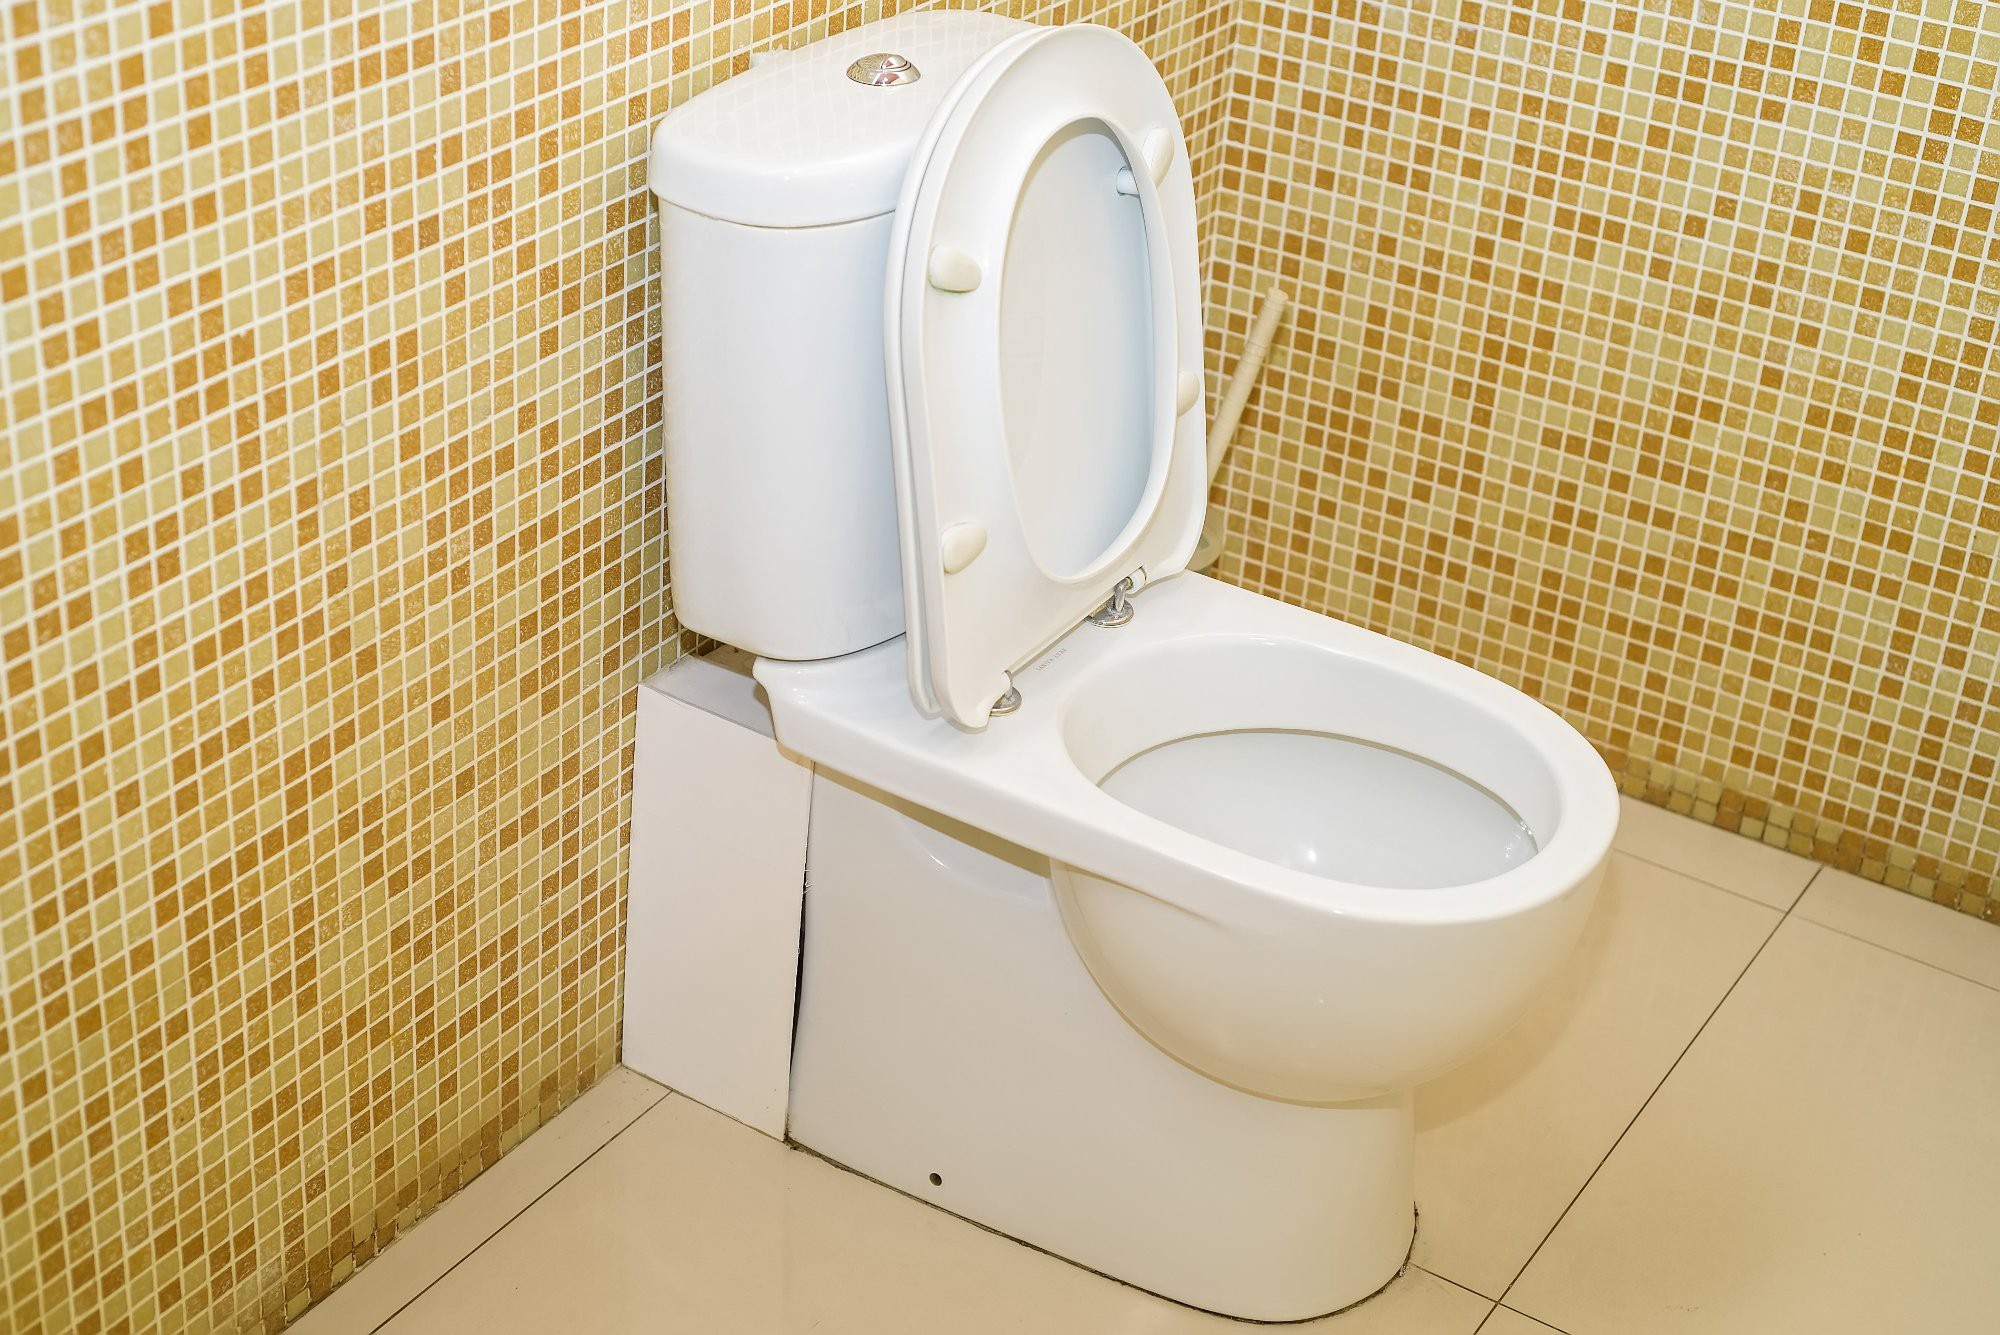 Don't leave the toilet seat up. Most of us that are leading a team